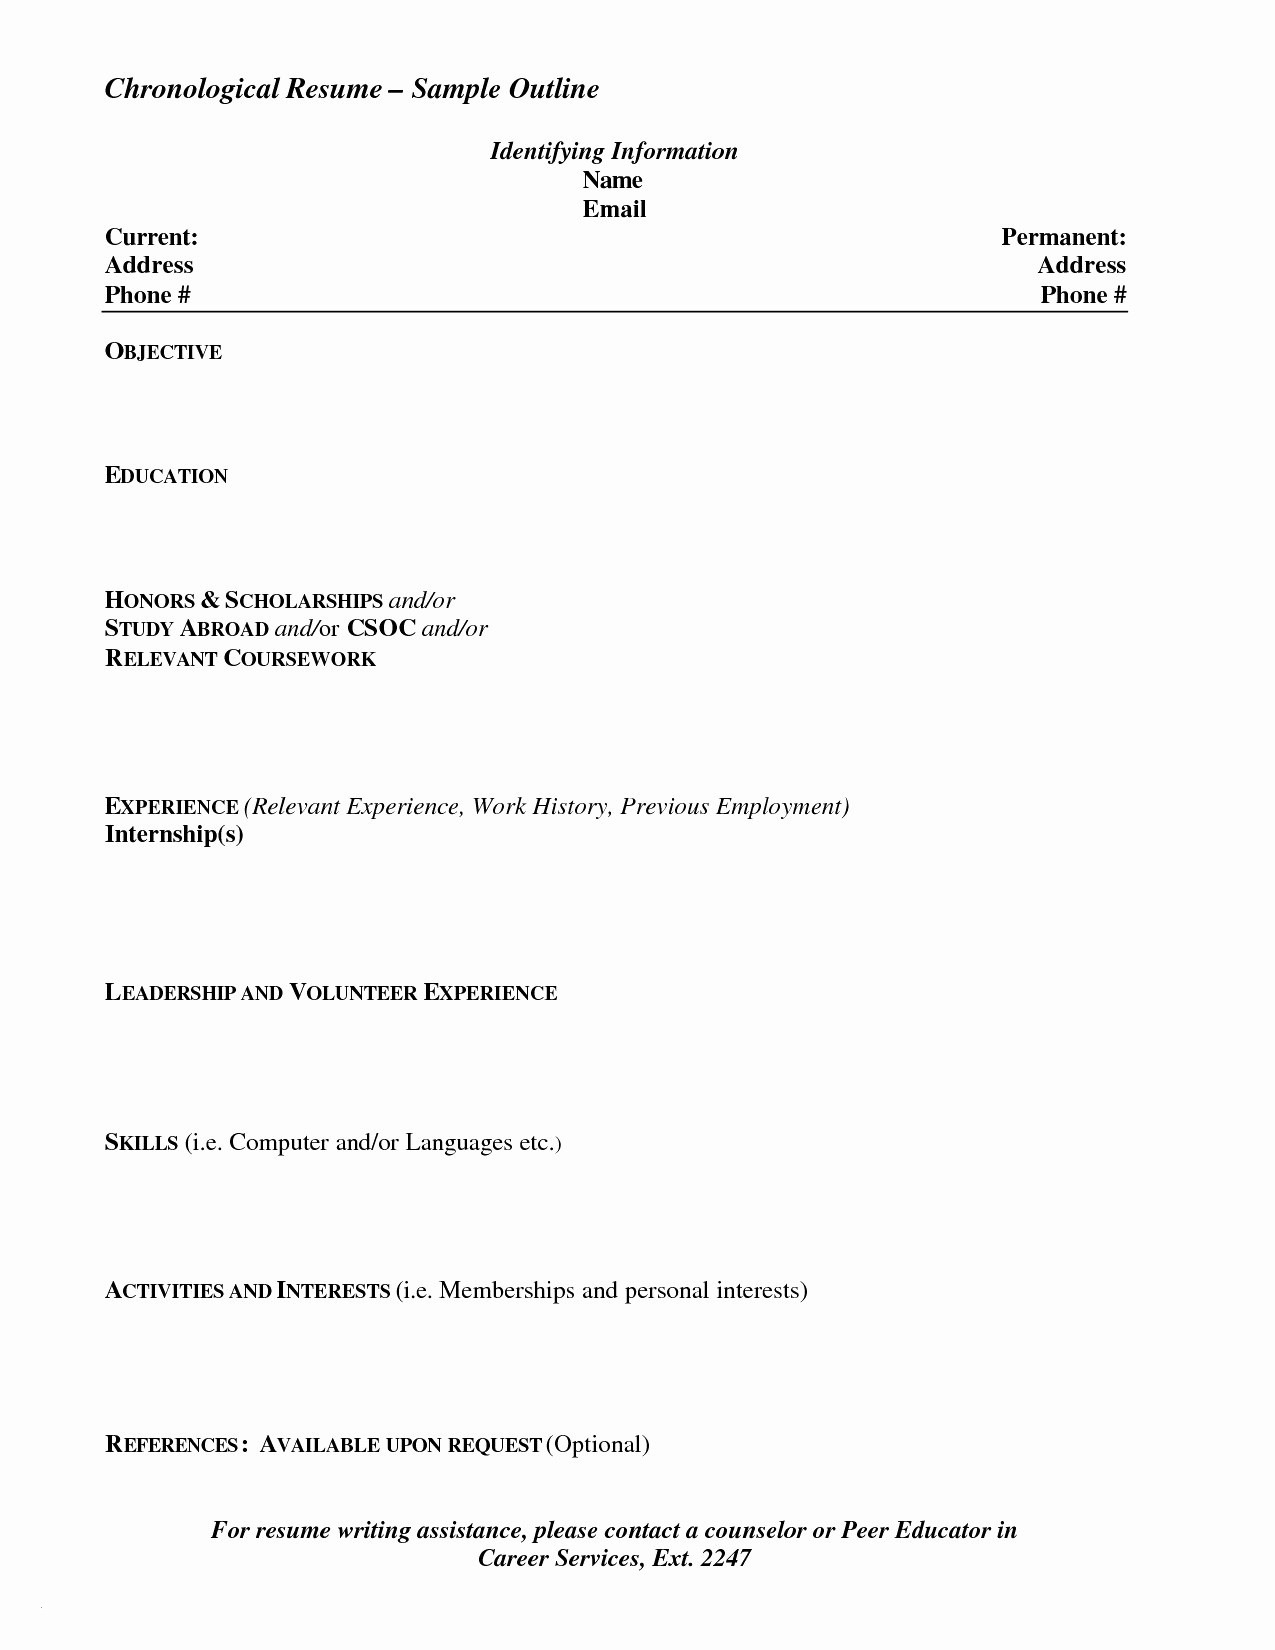 volunteer experience on resume example-Volunteer Resume Template Unique Programmer Resume Lovely Resume Cover Letter formatted Resume 0d 1-g